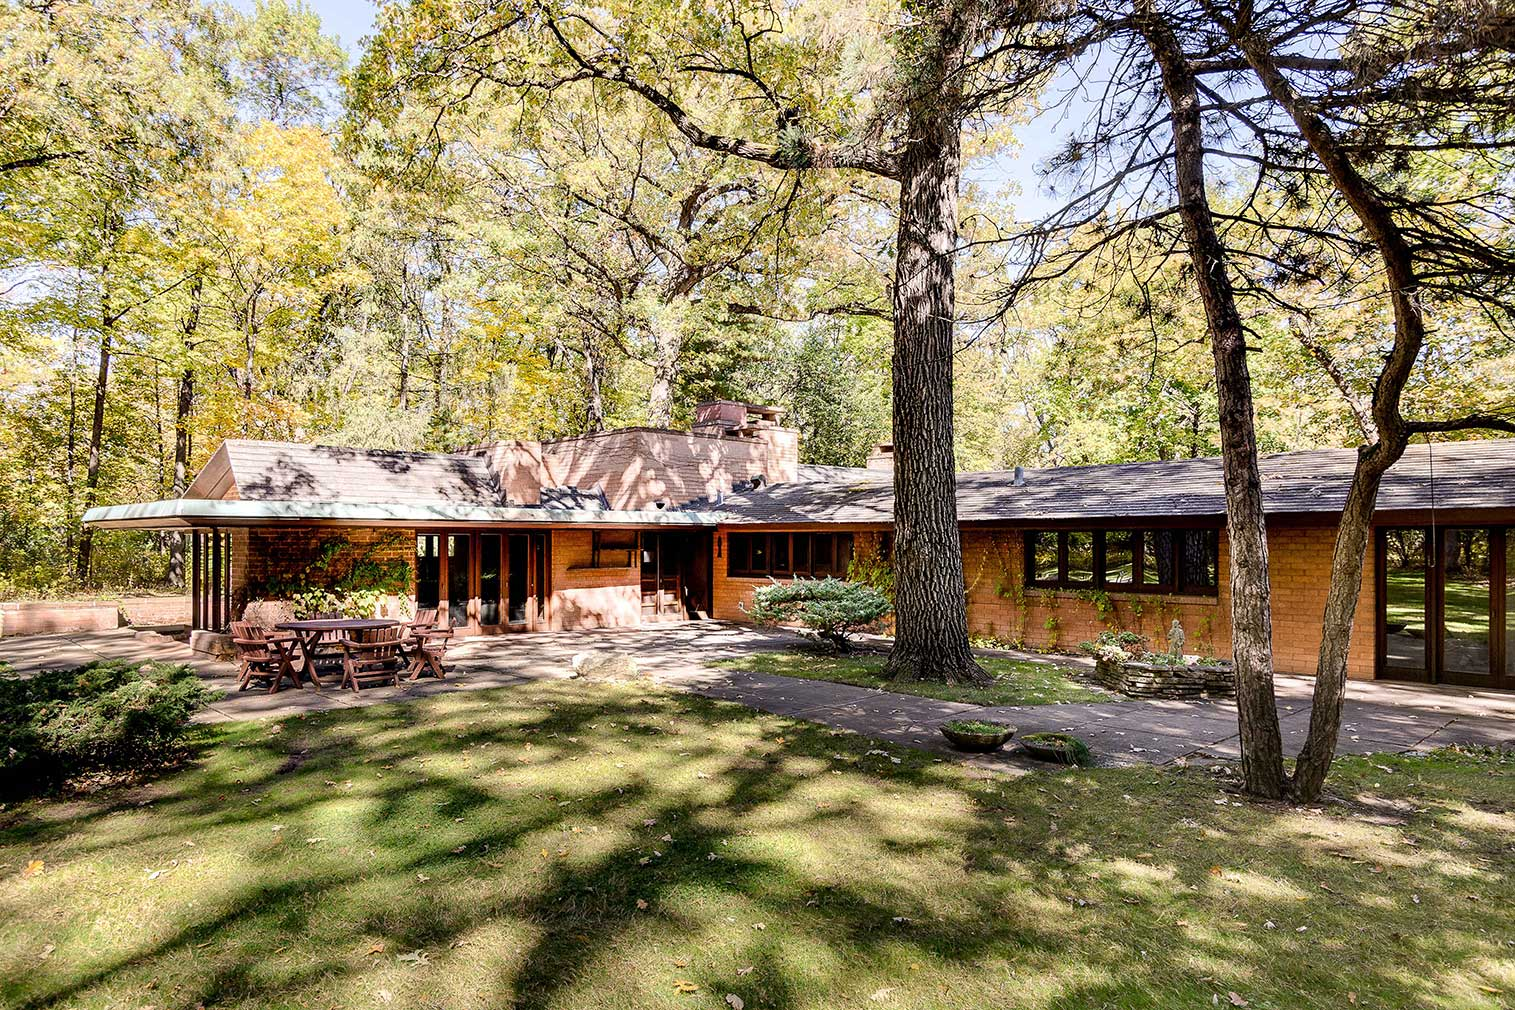 The John Carr Residence in Glenview, Illinois is for sale